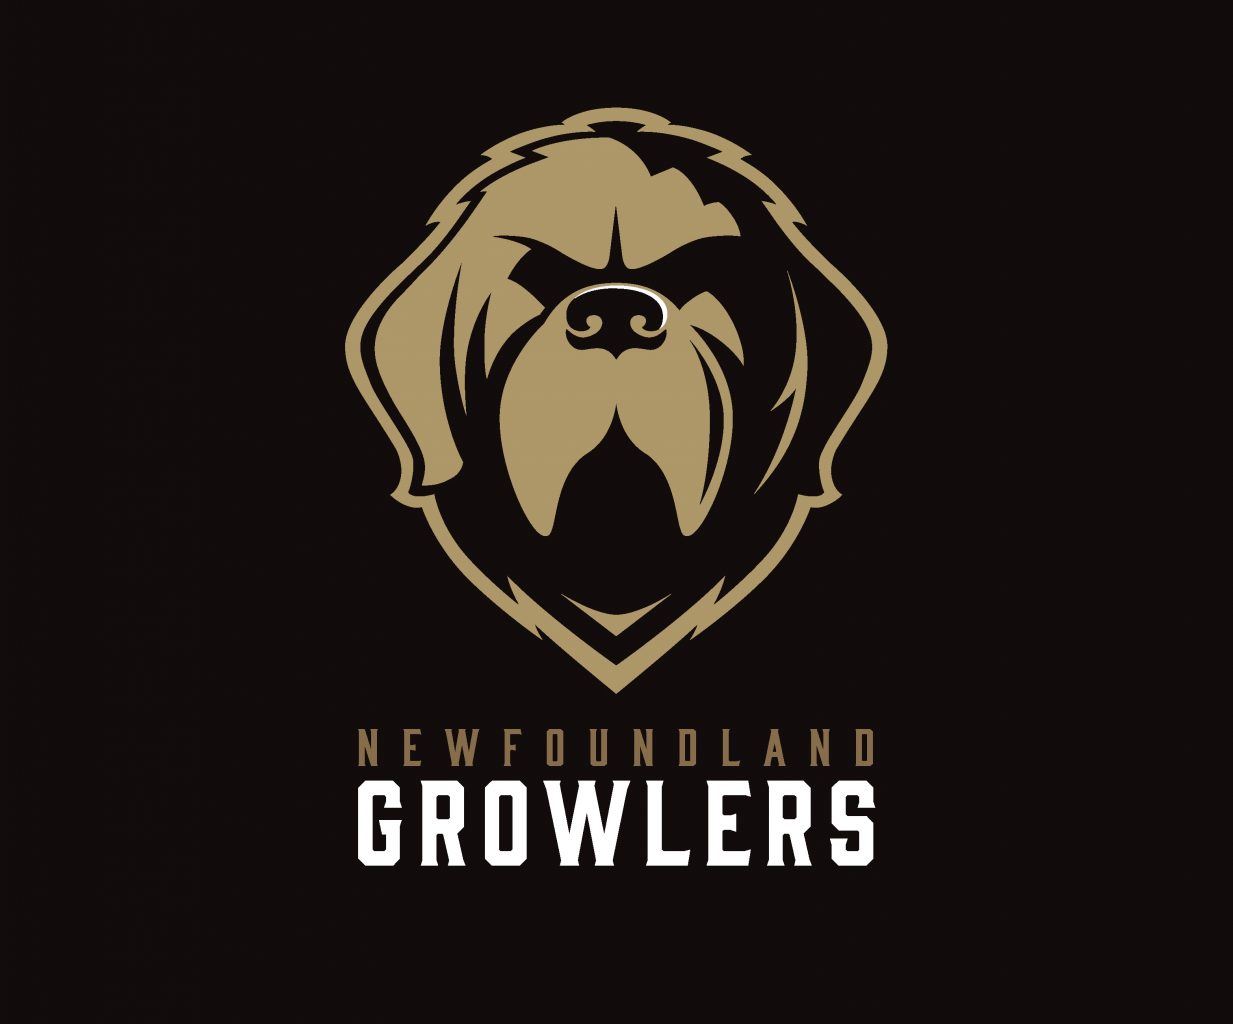 NL GROWLERS VS. MANCHESTER MONARCHS